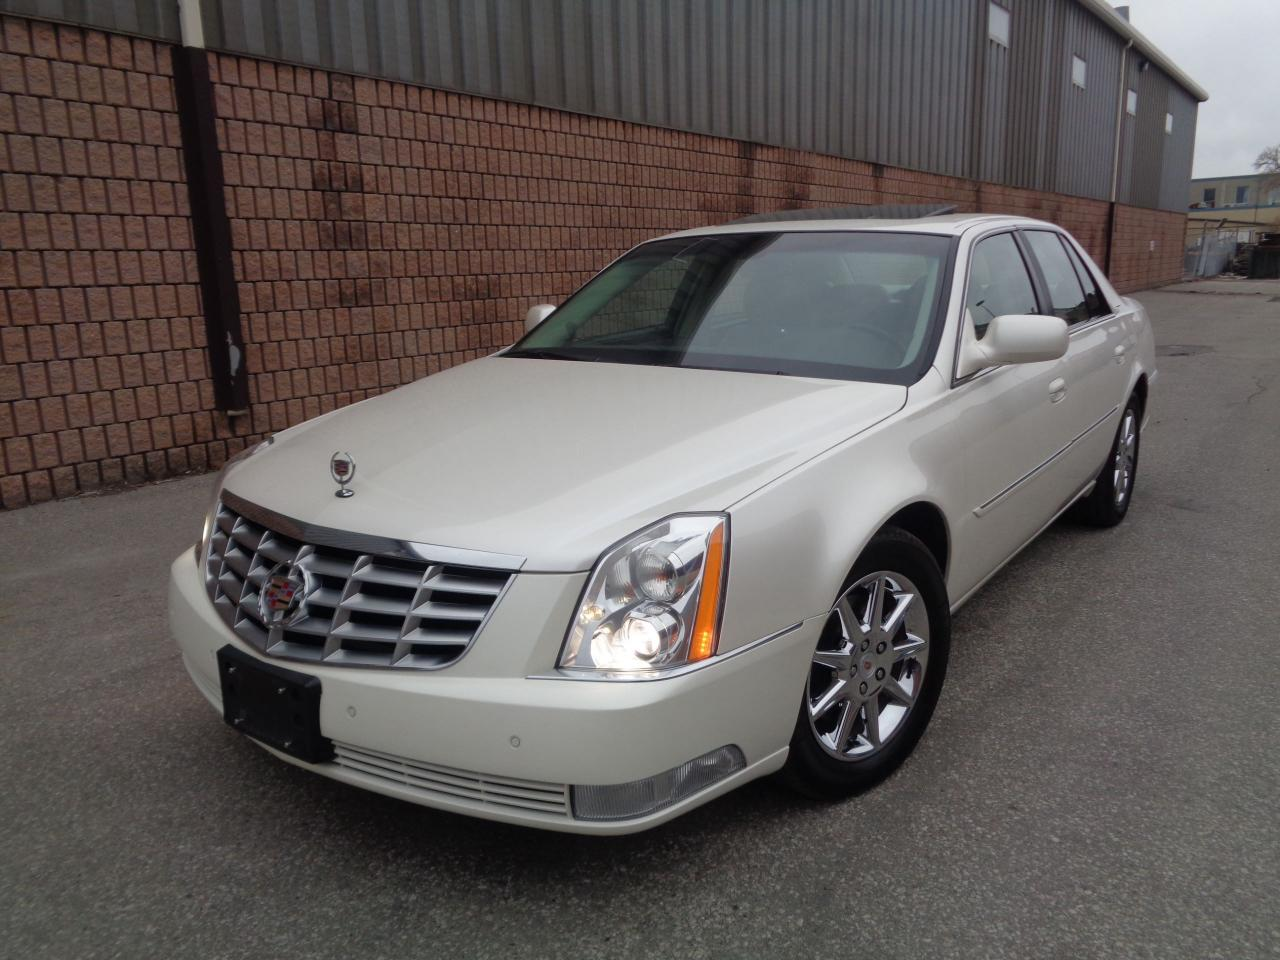 cars edmonton dts used cadillac mitula alberta leather sedan